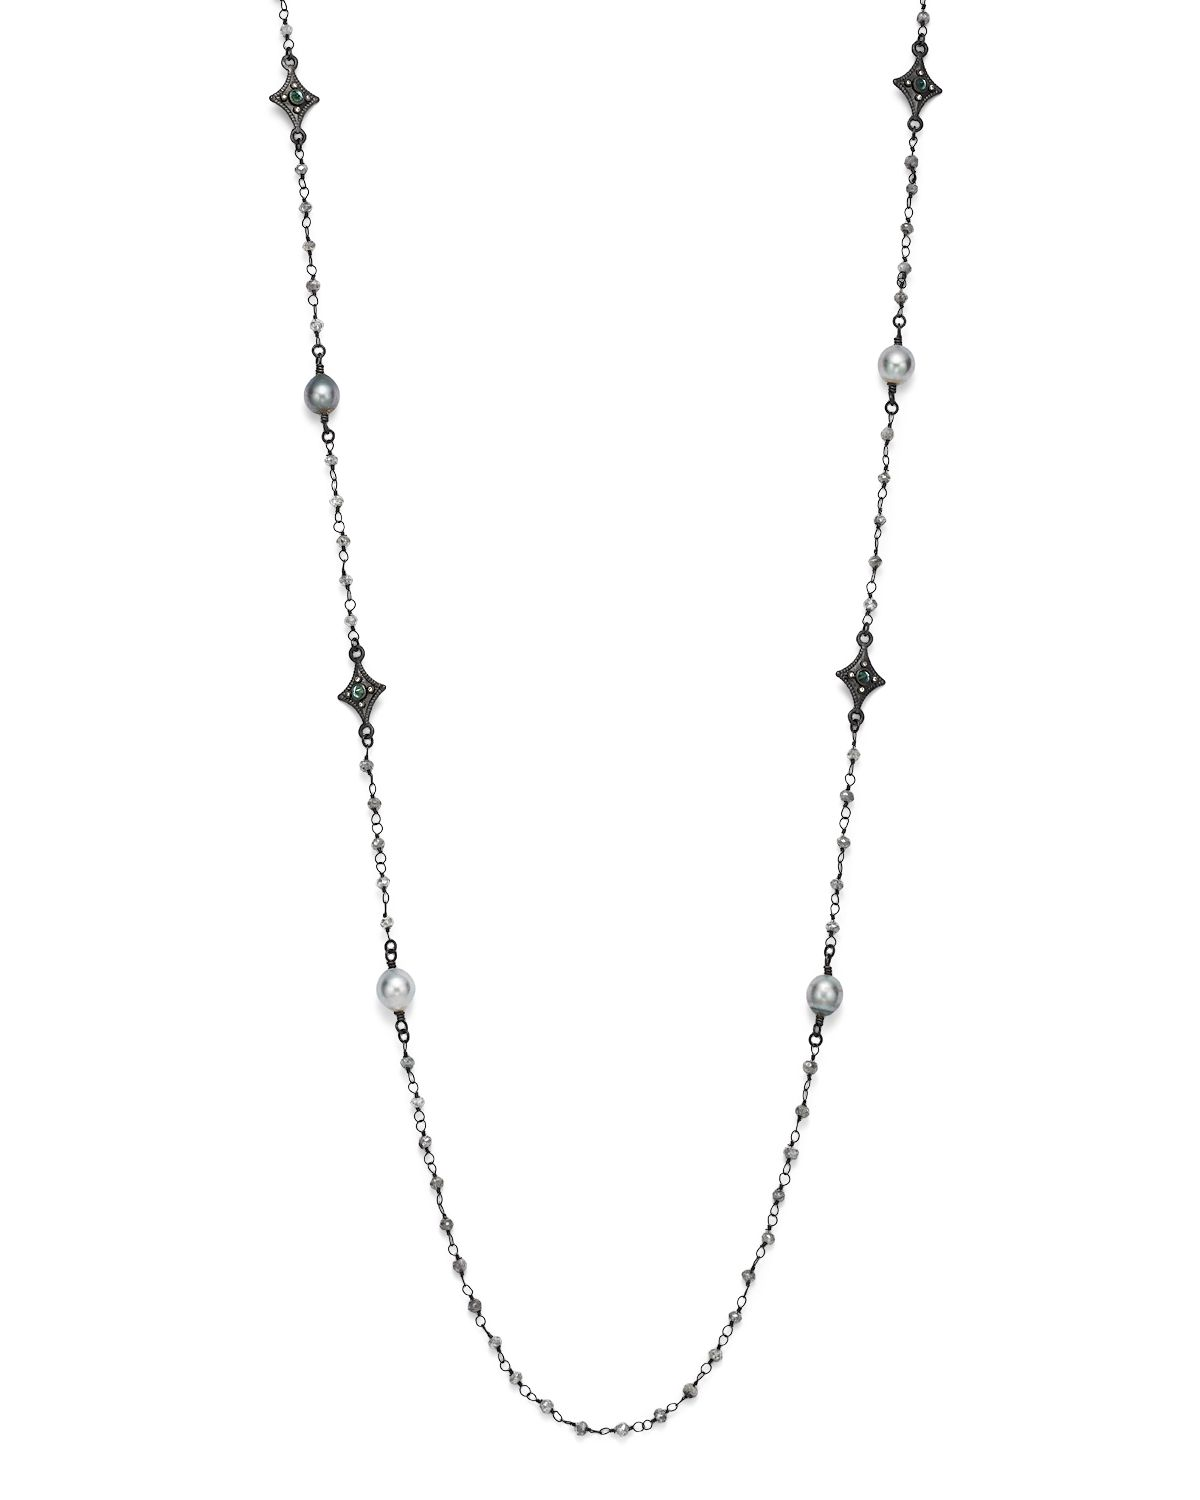 Armenta Old World Tahitian Pearl Station Necklace with Champagne Diamonds, 39